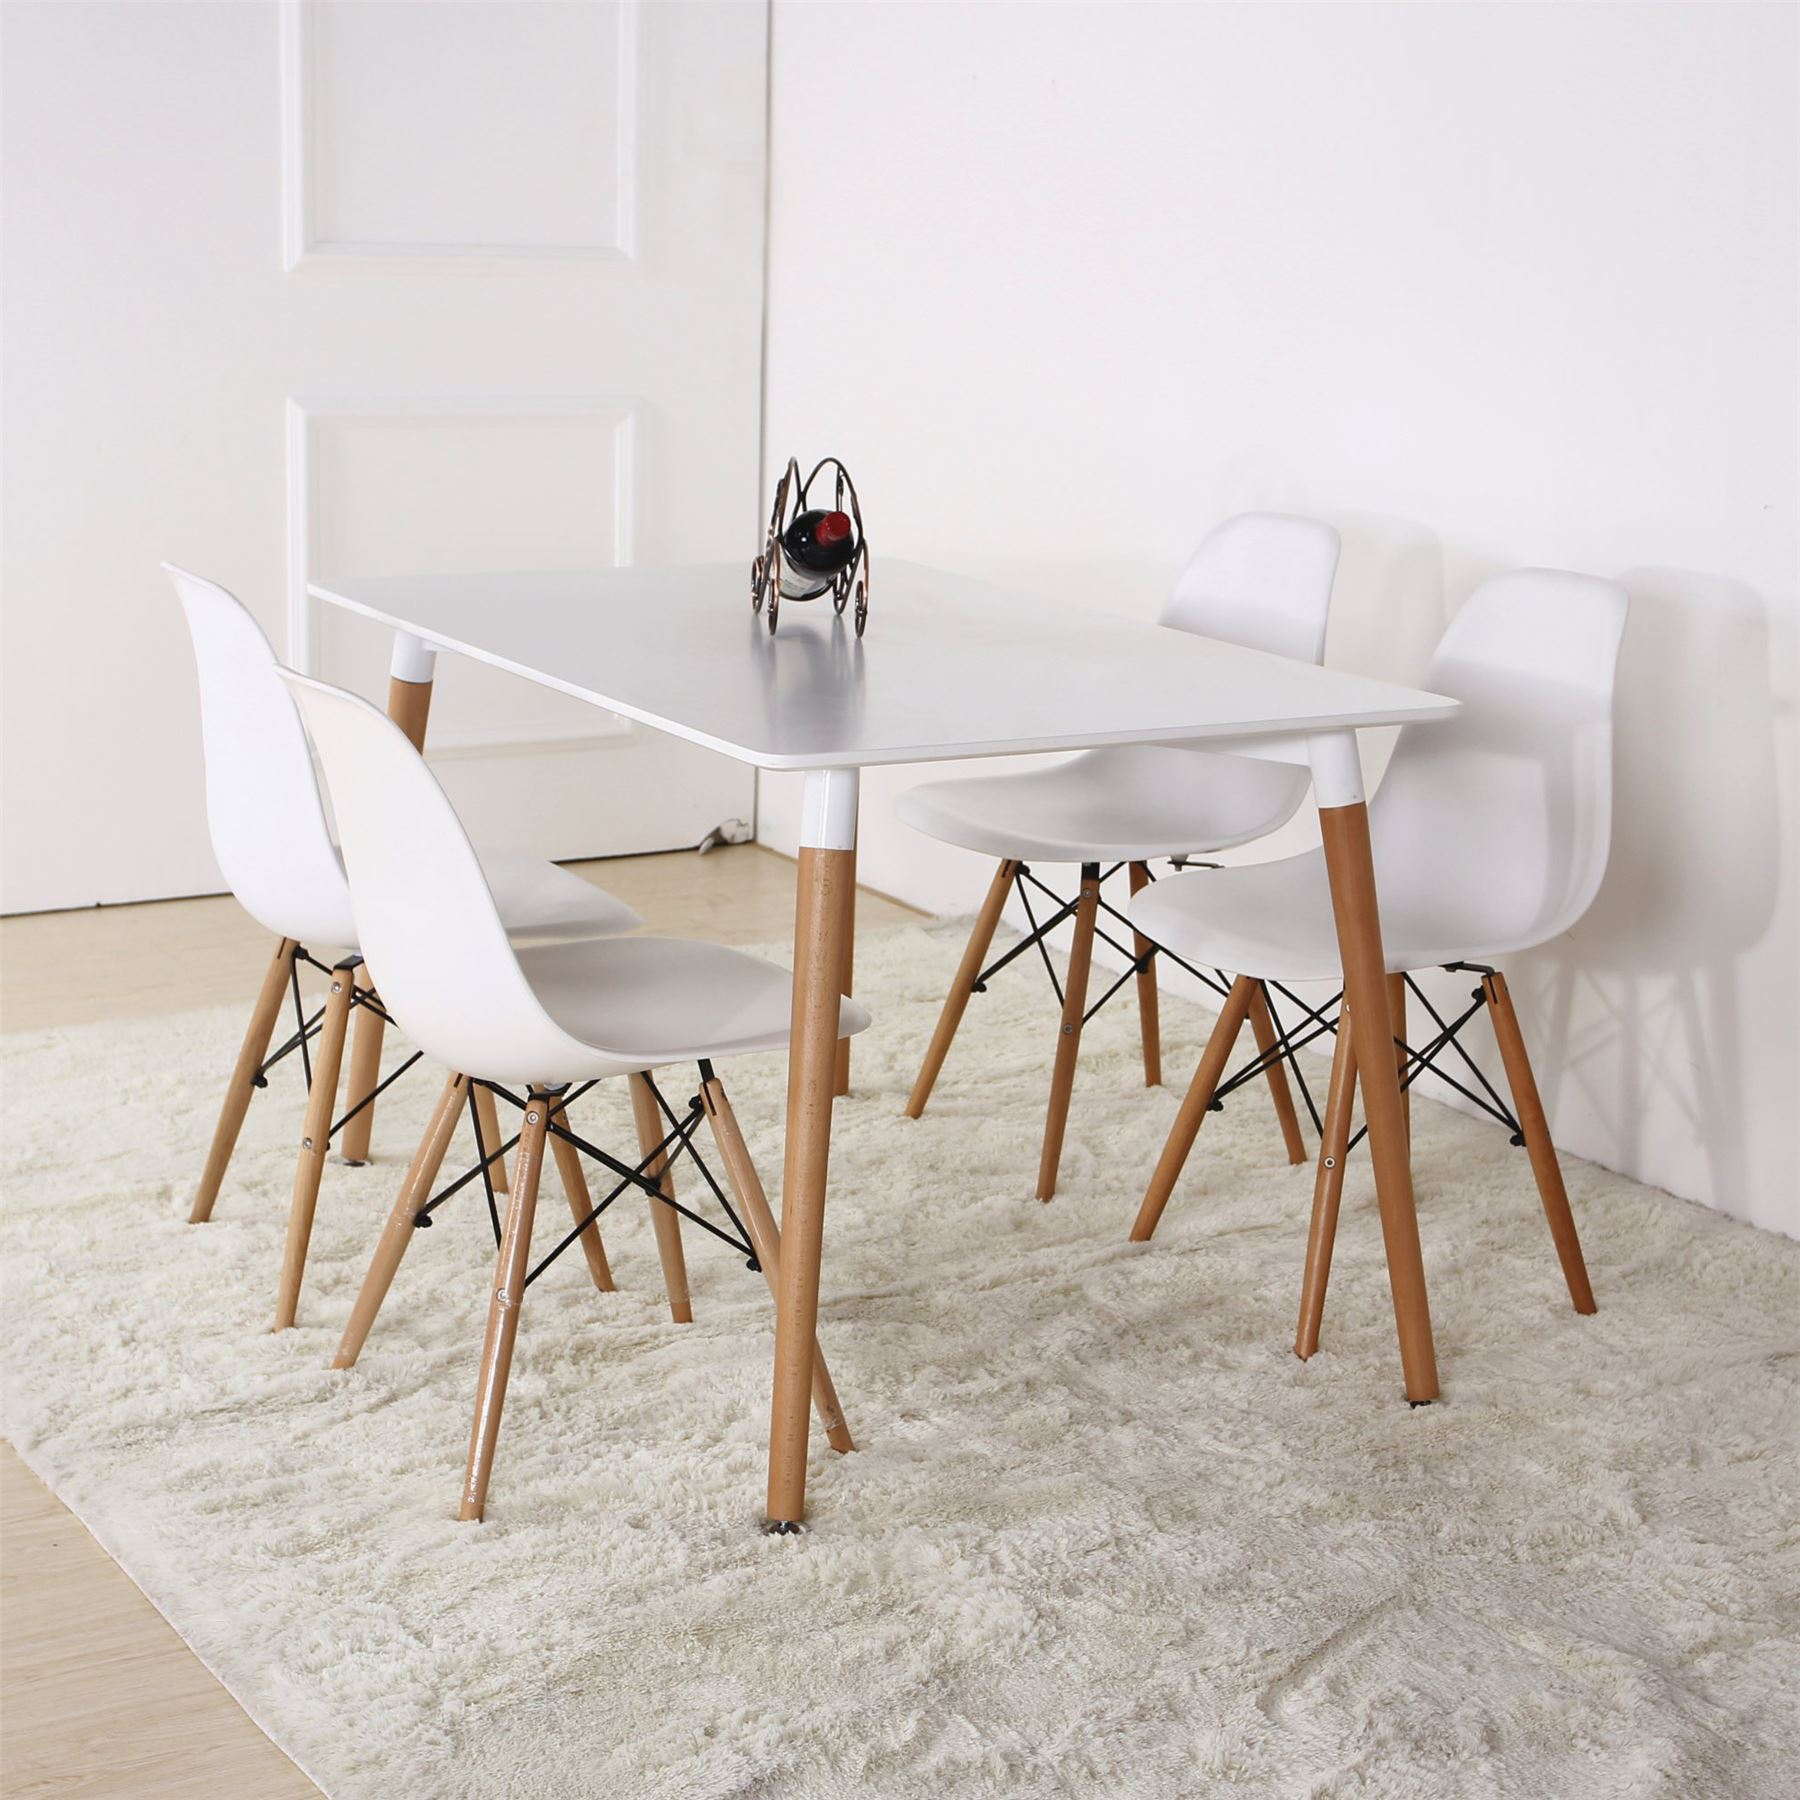 Eames eiffel chair dining room - Charles Ray Eames Eiffel Inspired Dining Living Room Office Table